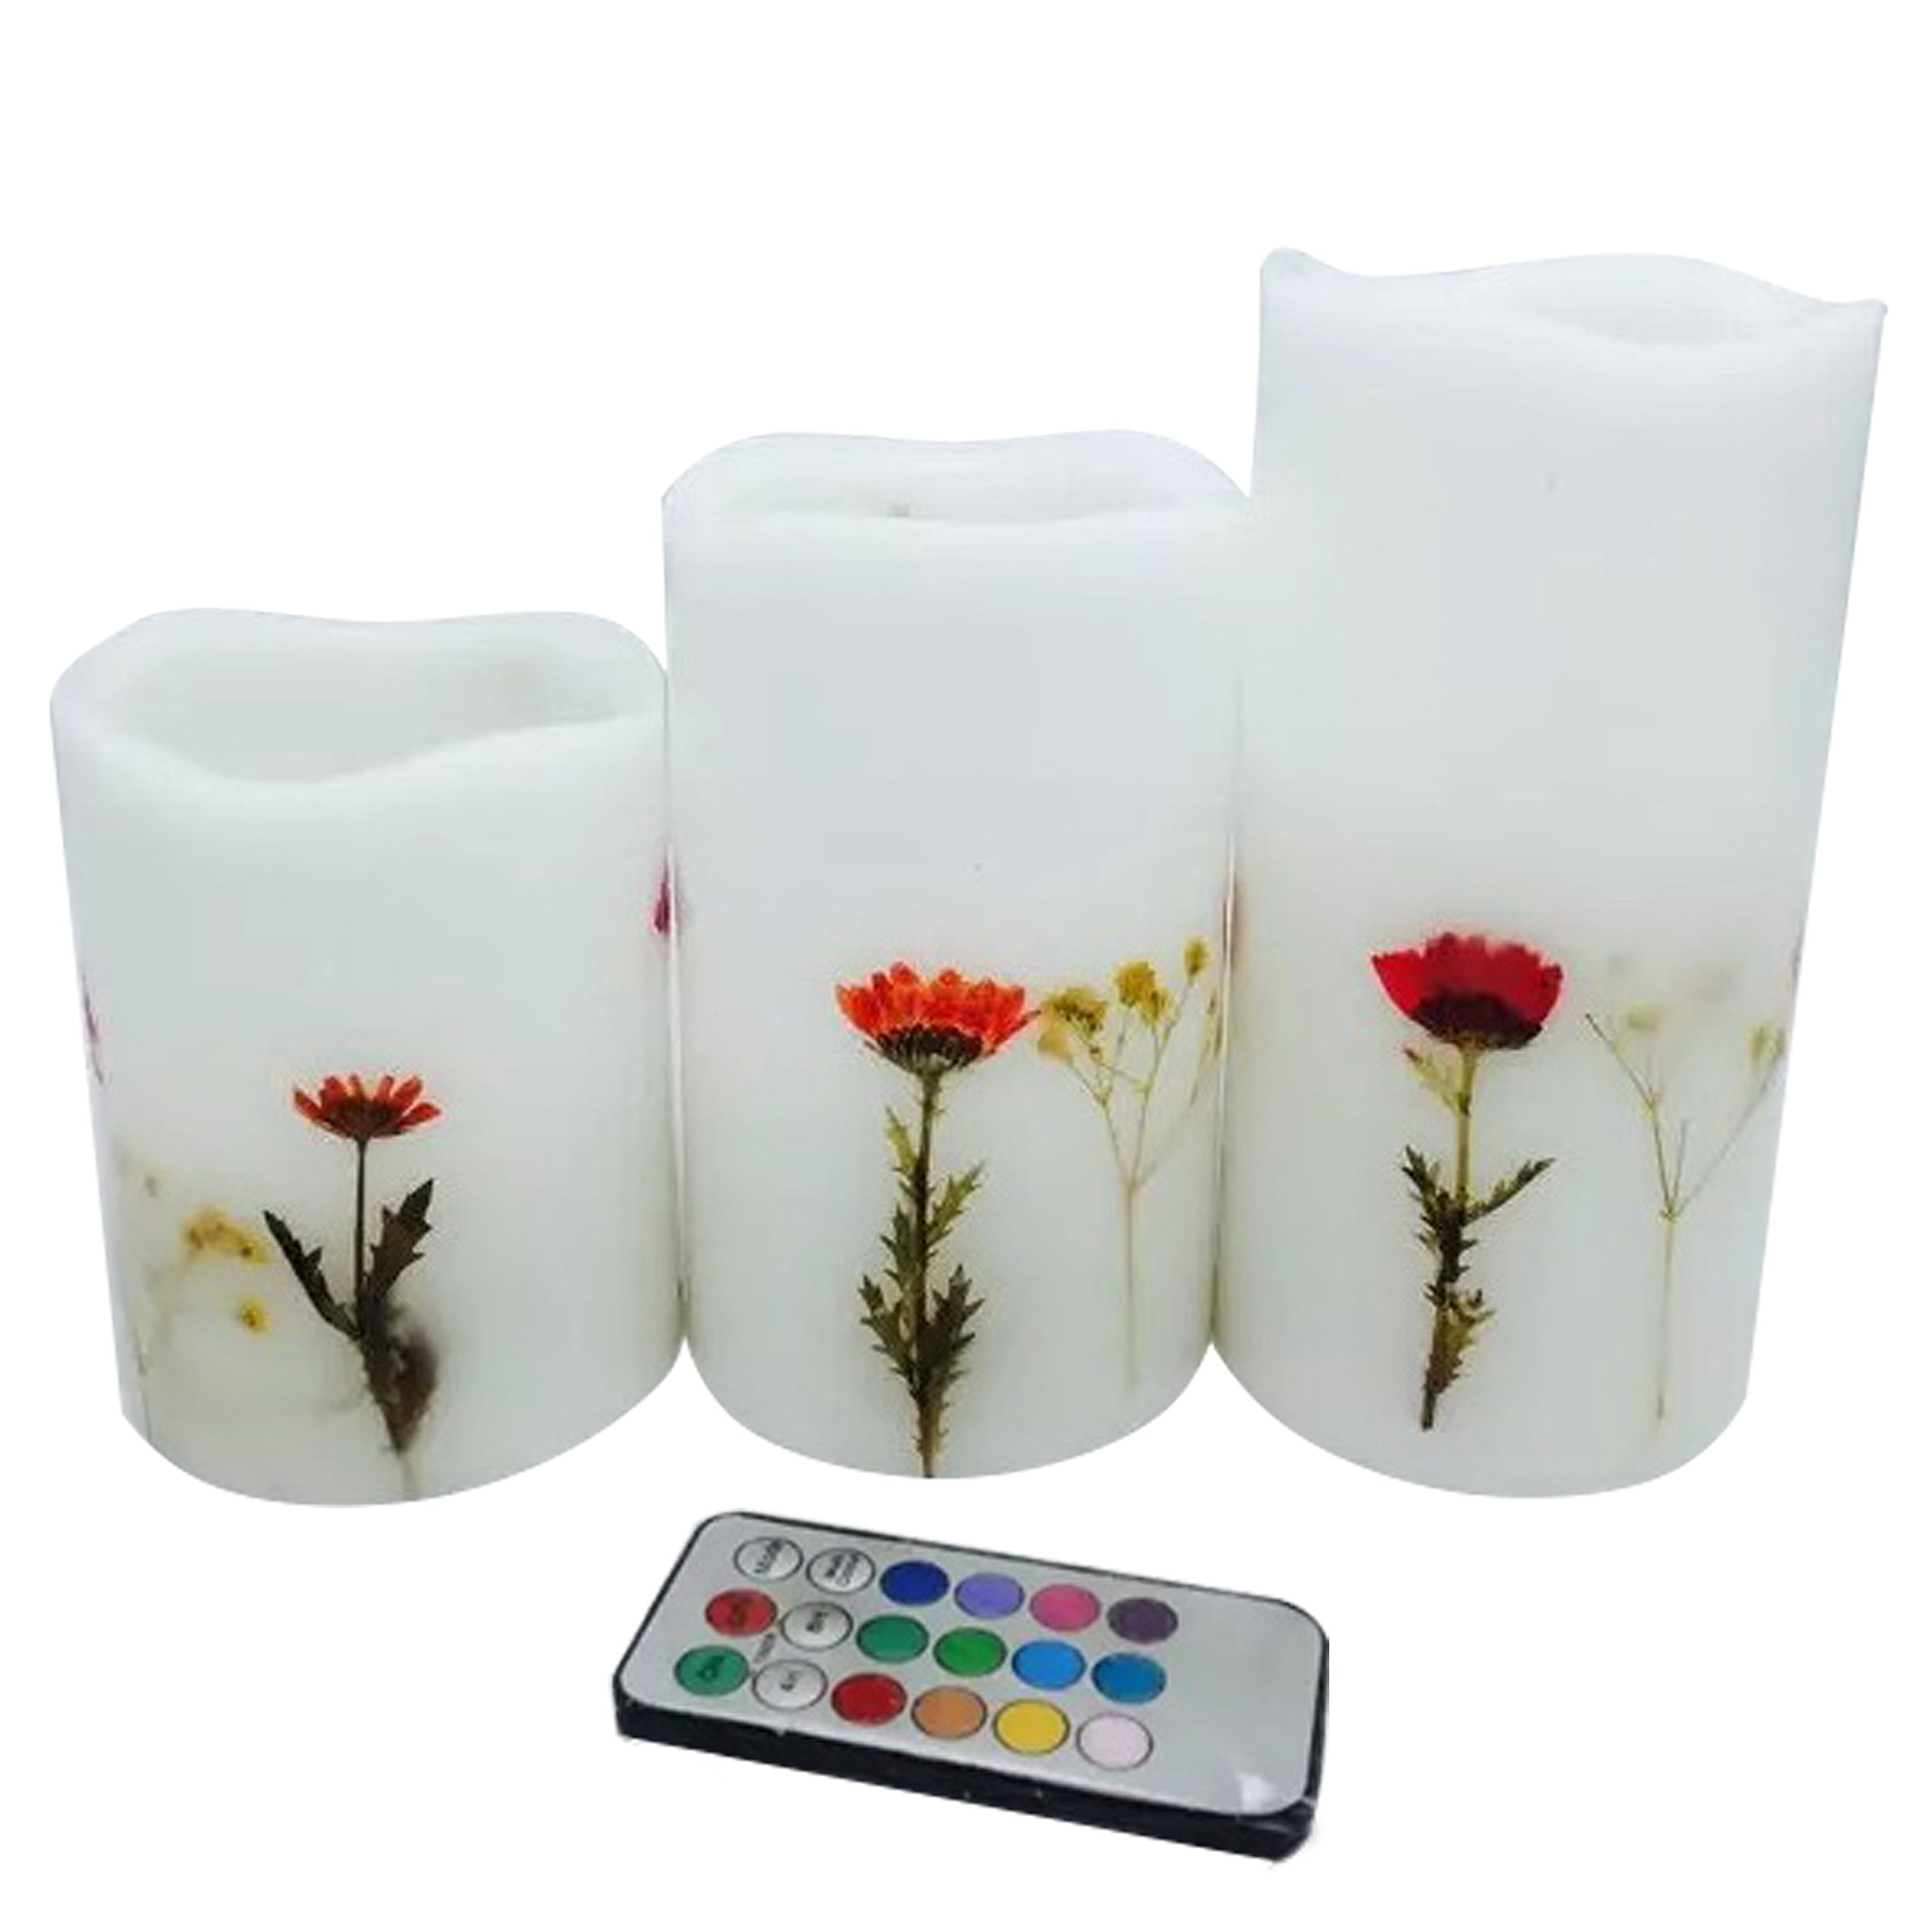 Adoria White Flameless Led candle-Real Wax Battery Candle-Remote Timer Pillar Candle-Natrual Dry Flower InlayedTall 4'',5'',6'', Set of 3